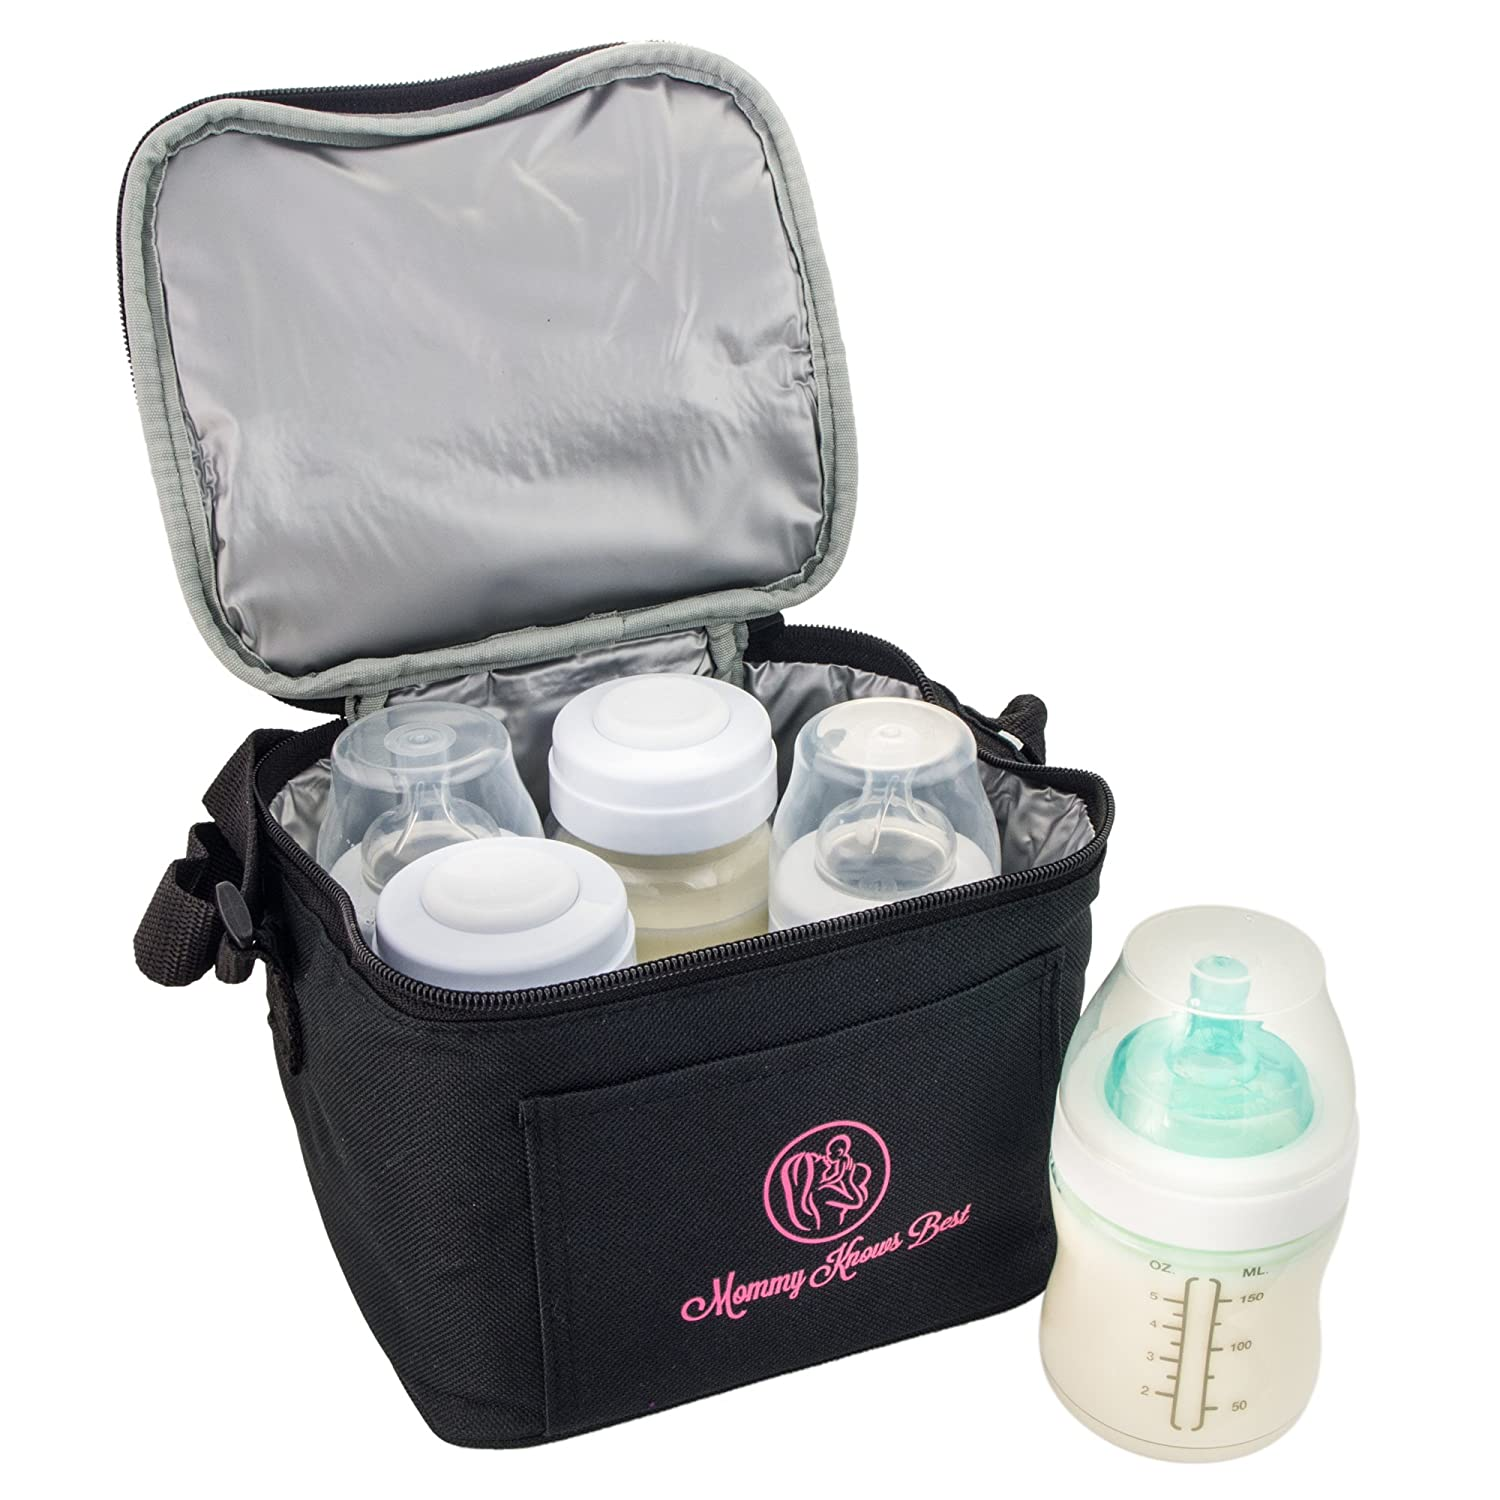 Breast Milk Baby Bottle Cooler Bag for Insulated Breastmilk Storage w/Air Tight Design to Lock in The Cold & Preserve Important Nutrients for Your Baby Mommy Knows Best